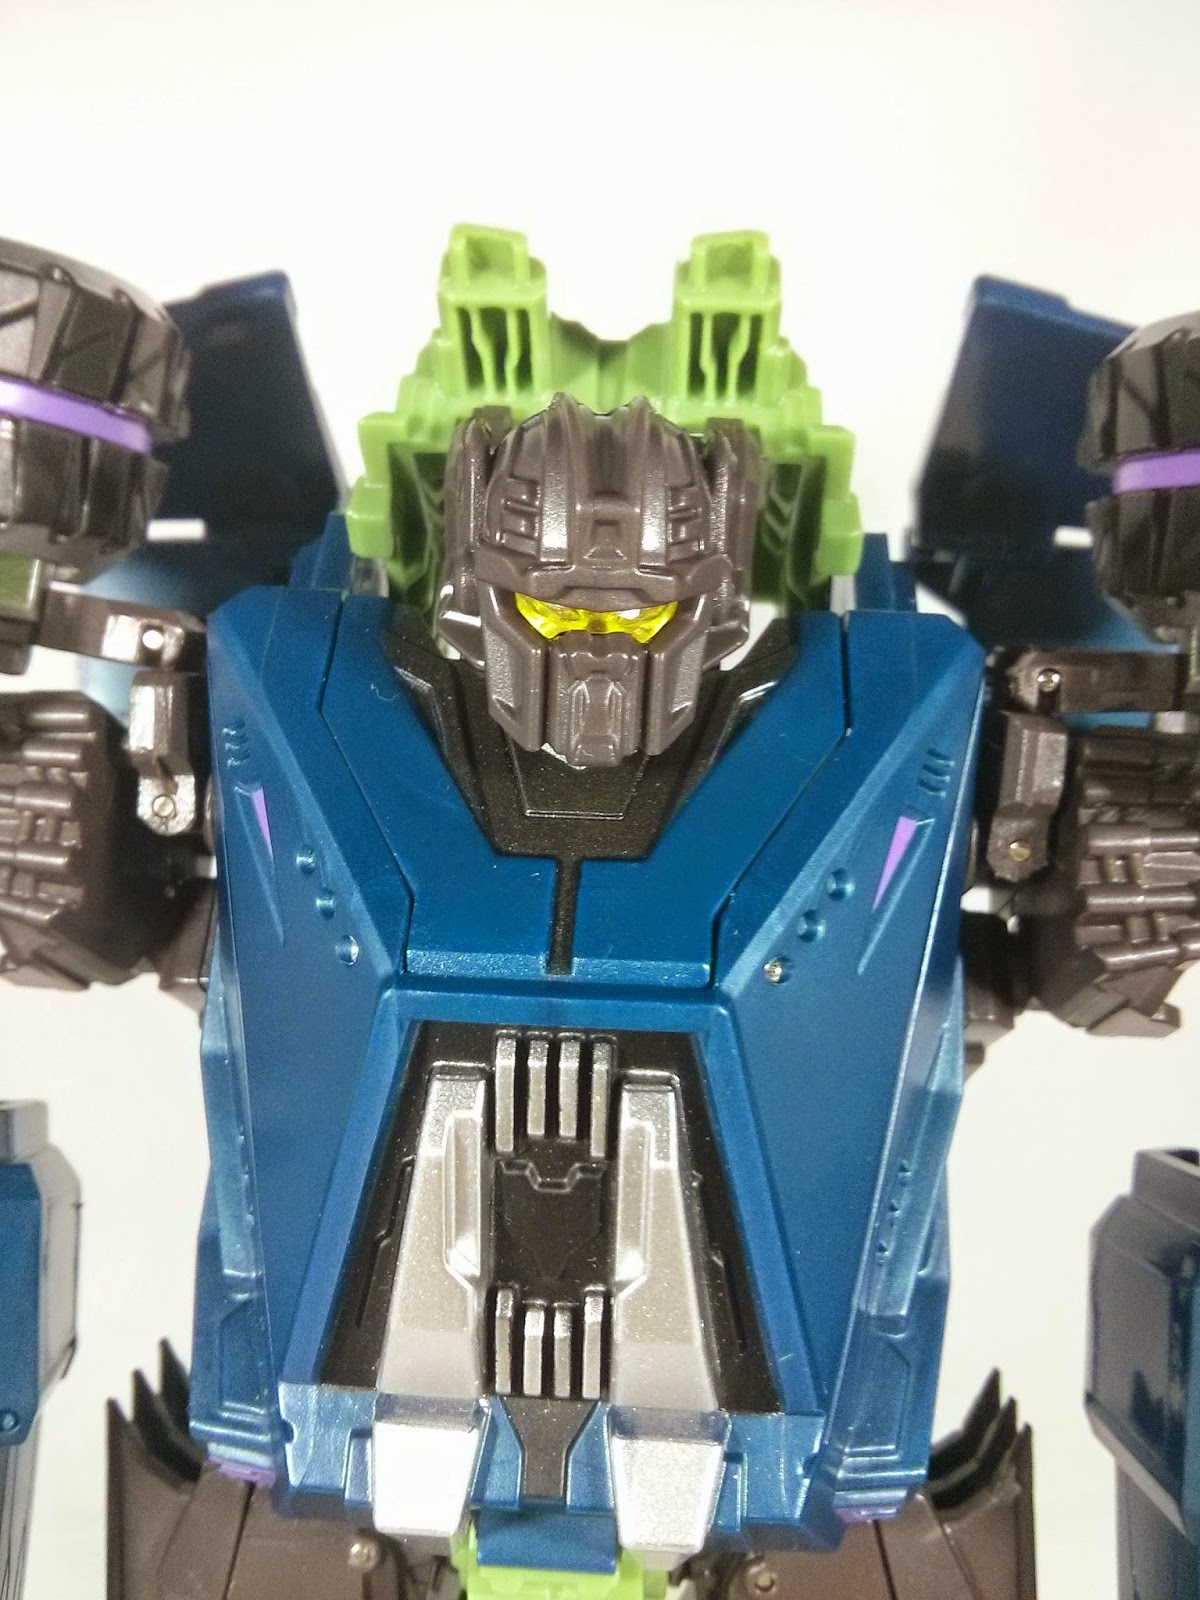 microblaze military titans onslaught head